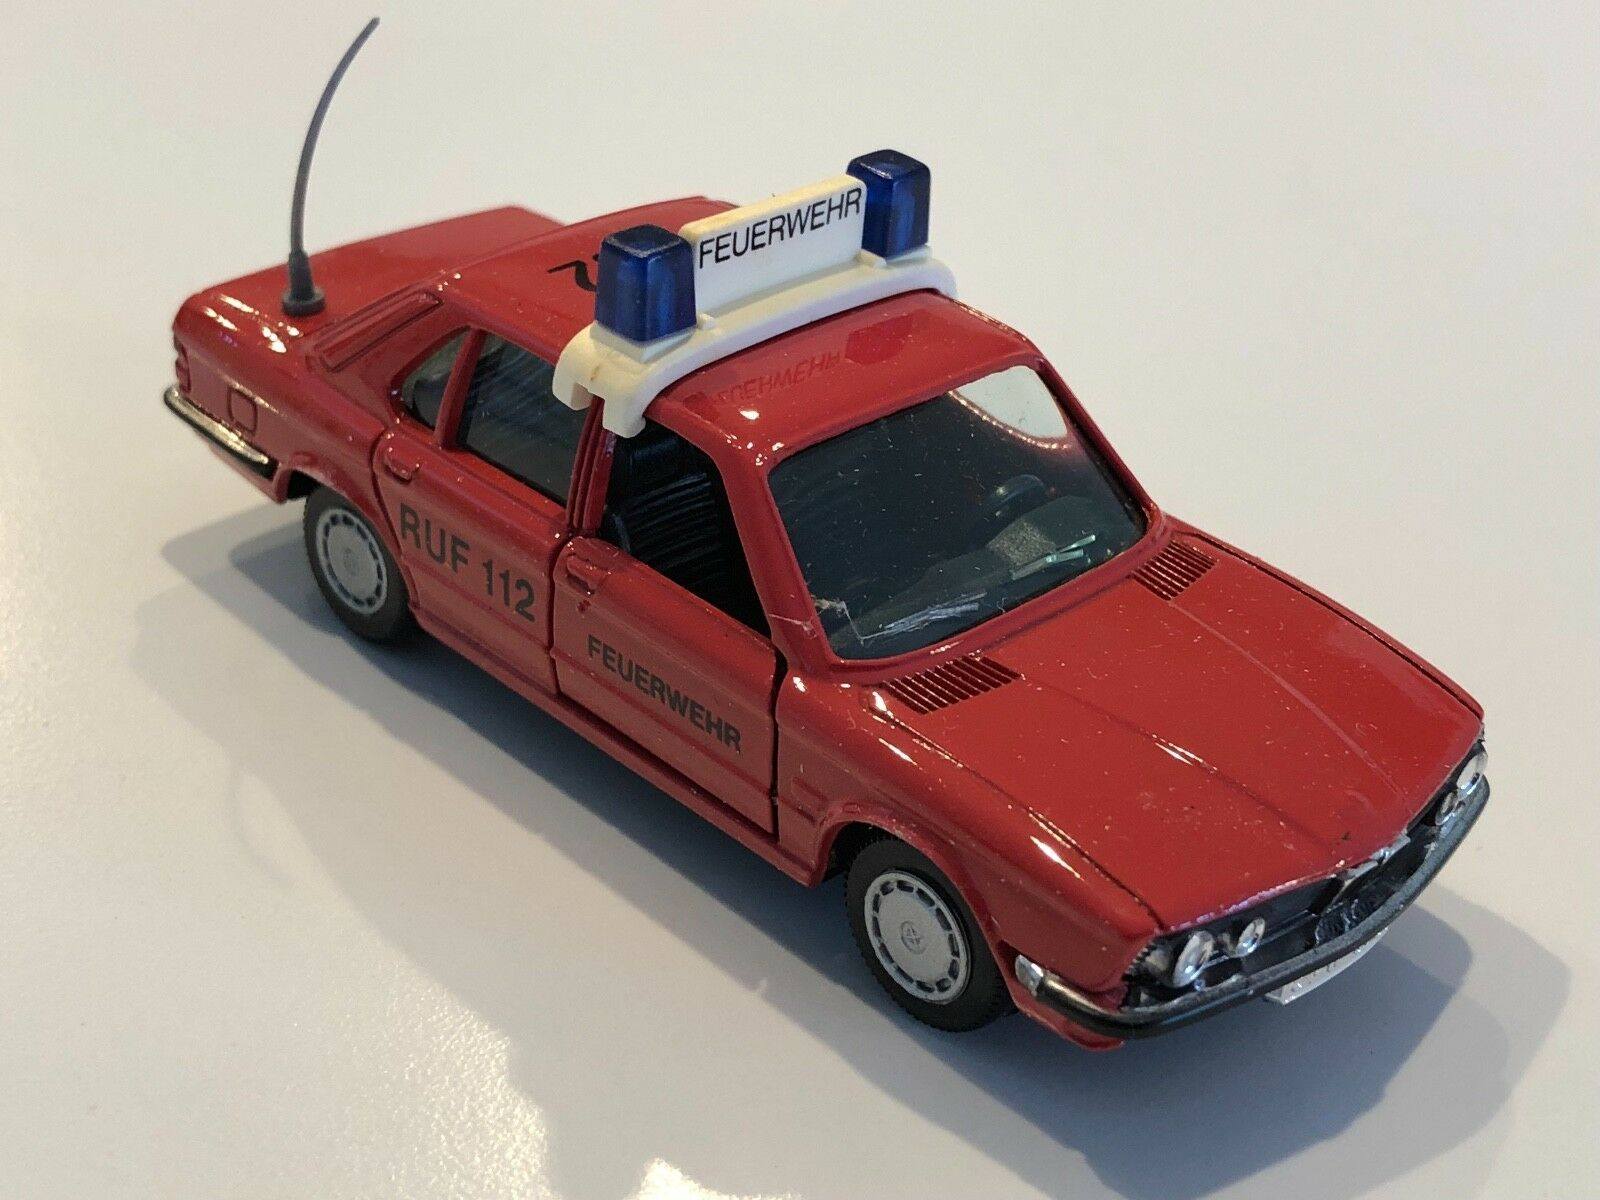 Bmw 528i E28 rouge Fire  Feuewehr RUF 112  1 43 scale model   82 22 9 406 346